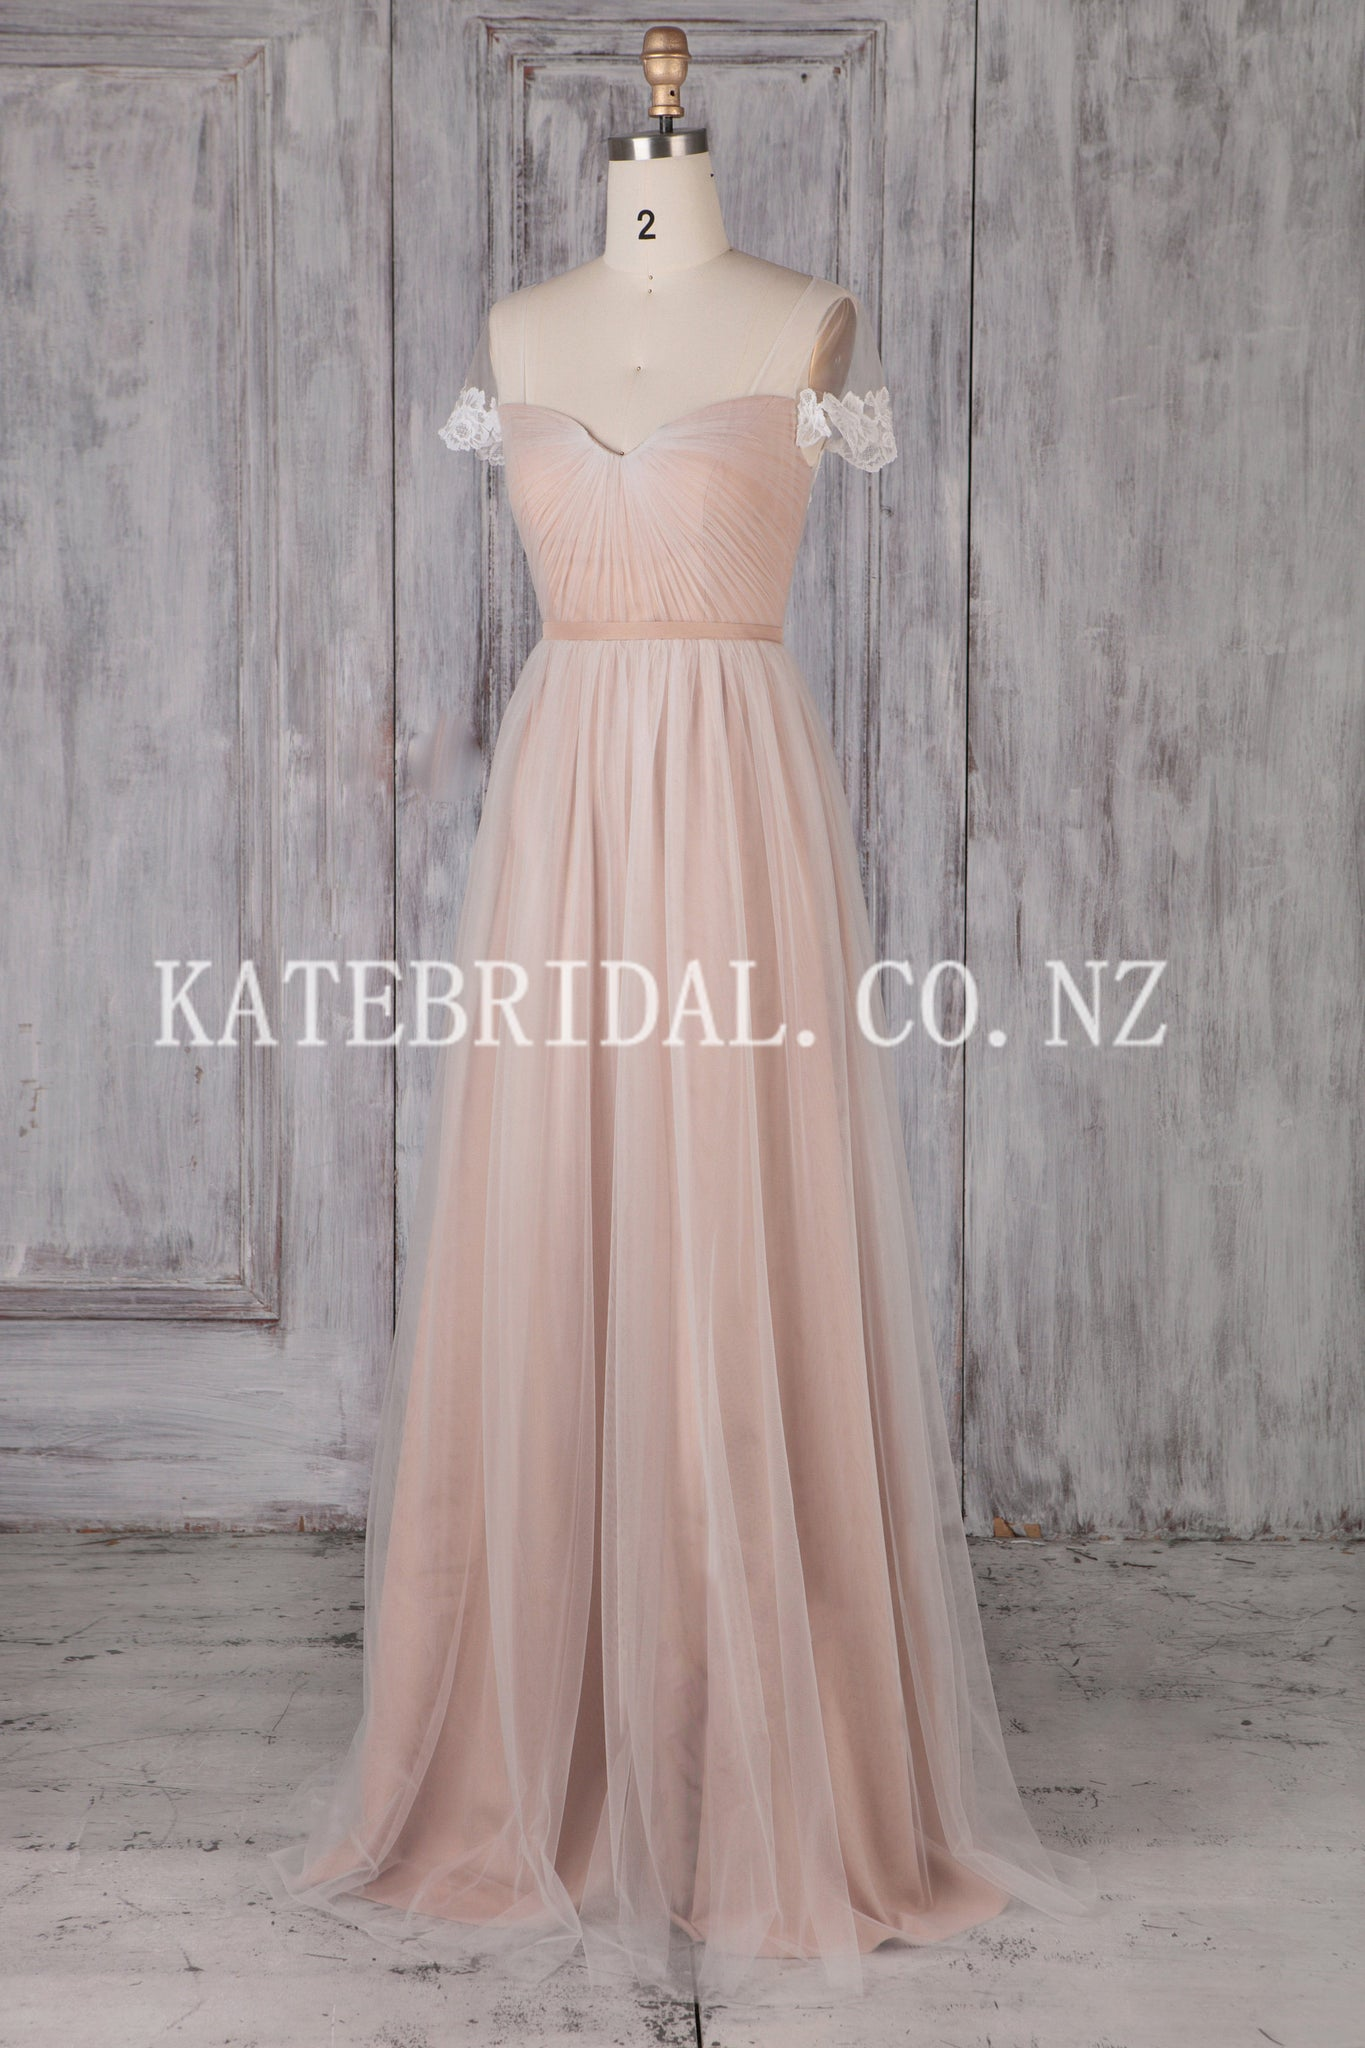 Appliqued Short Sleeve Sweetheart Floor-Length Illusion Tulle Bridesmaid Dress With Ribbon